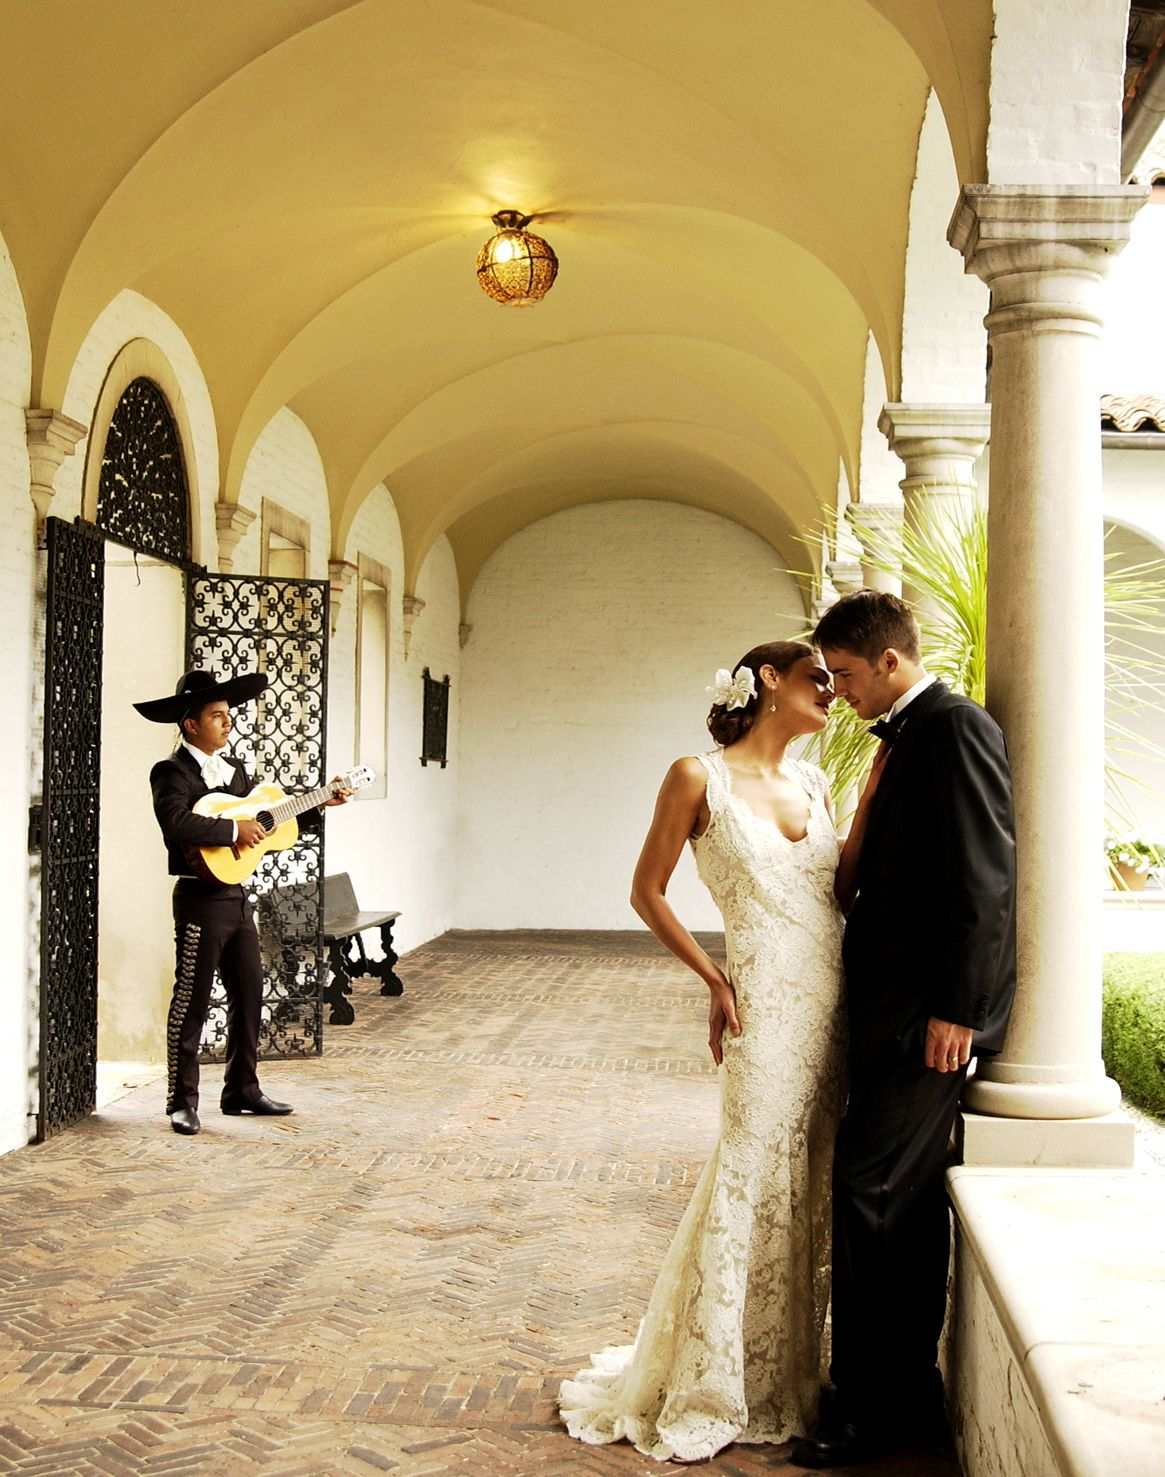 Pin By Veronica Montano On Wedding Ideas Spanish Style Weddings Spanish Themed Weddings Latin Wedding